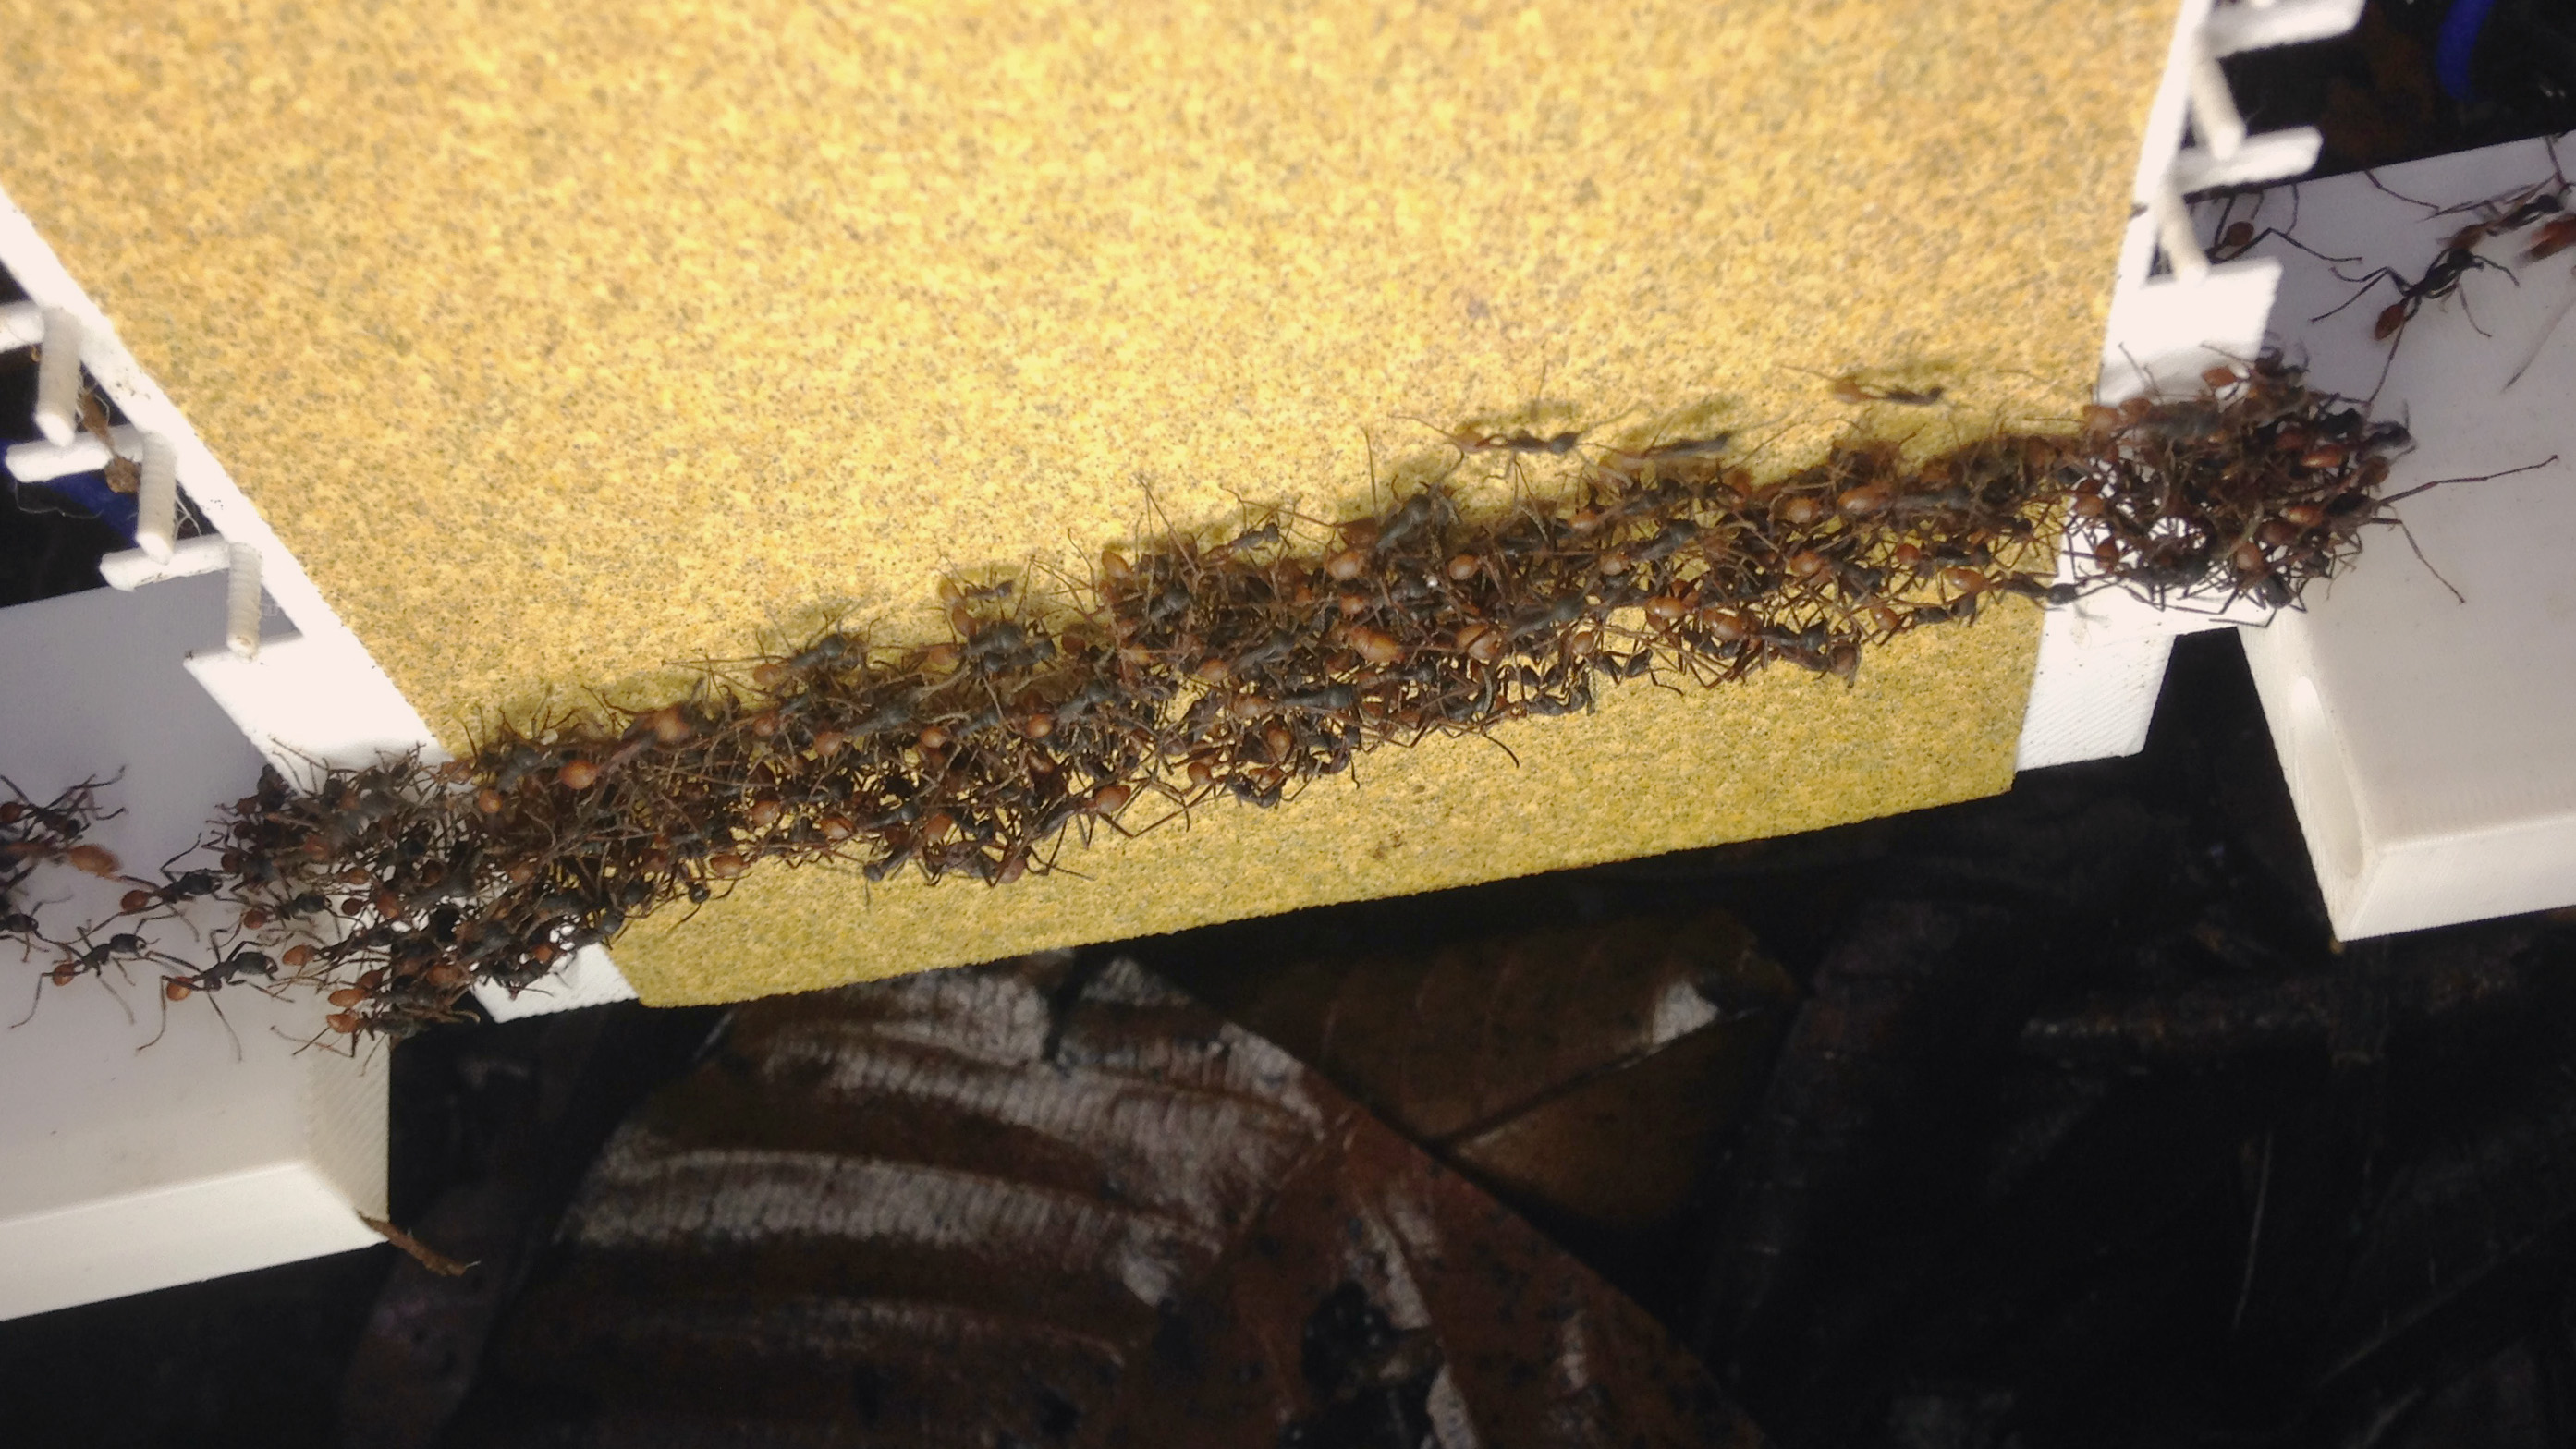 Army ants forming a scaffold megastructure to cross a vertical surface